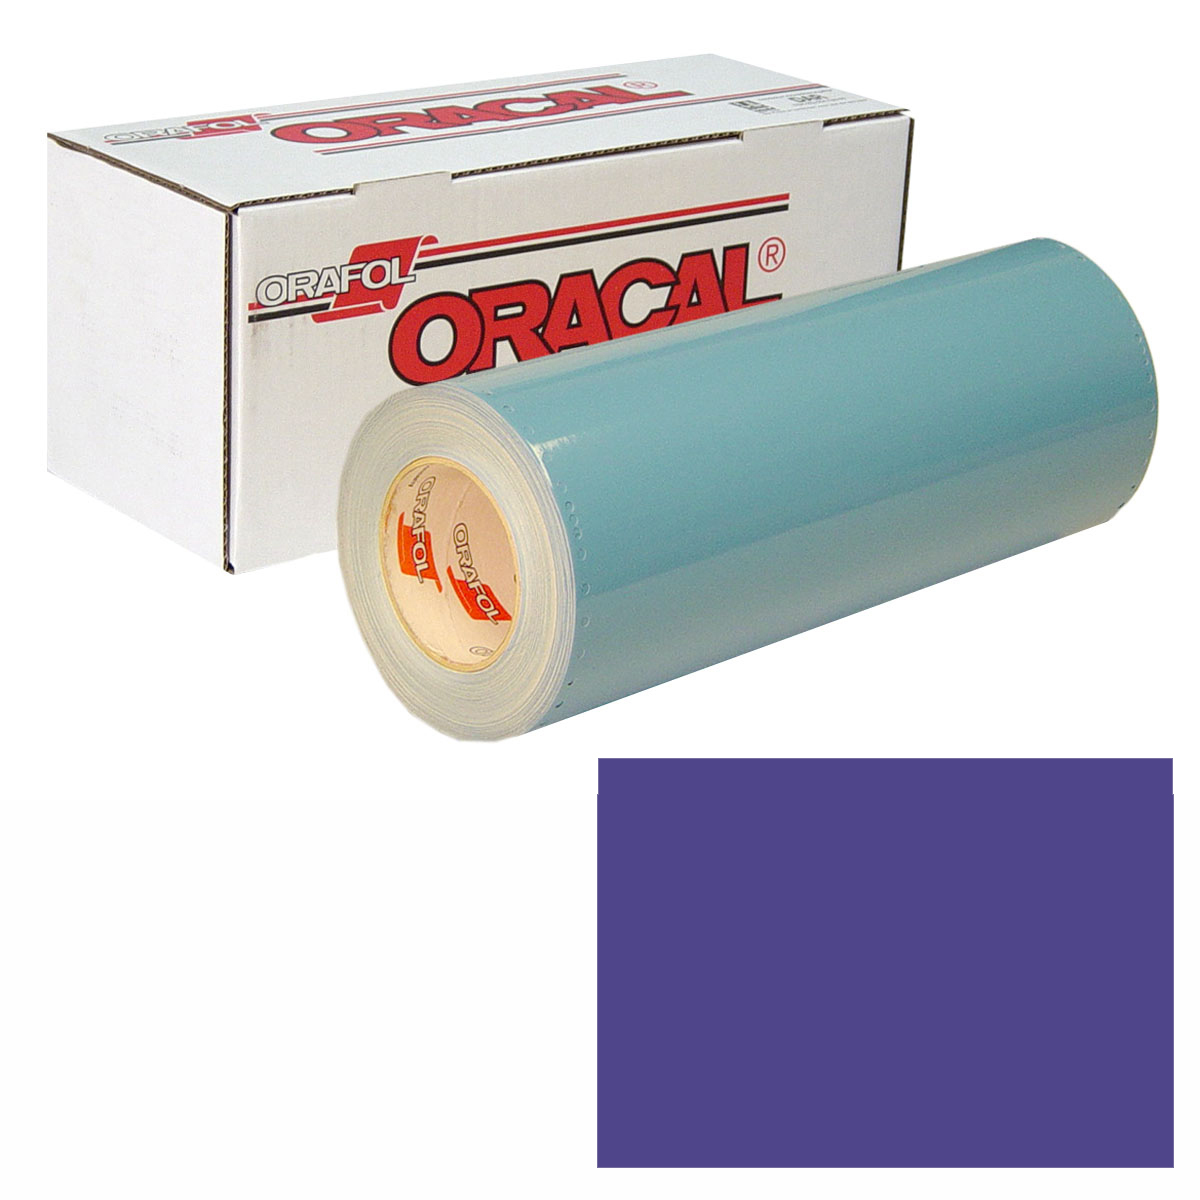 ORACAL 751 Unp 24In X 50Yd 518 Steel Blue